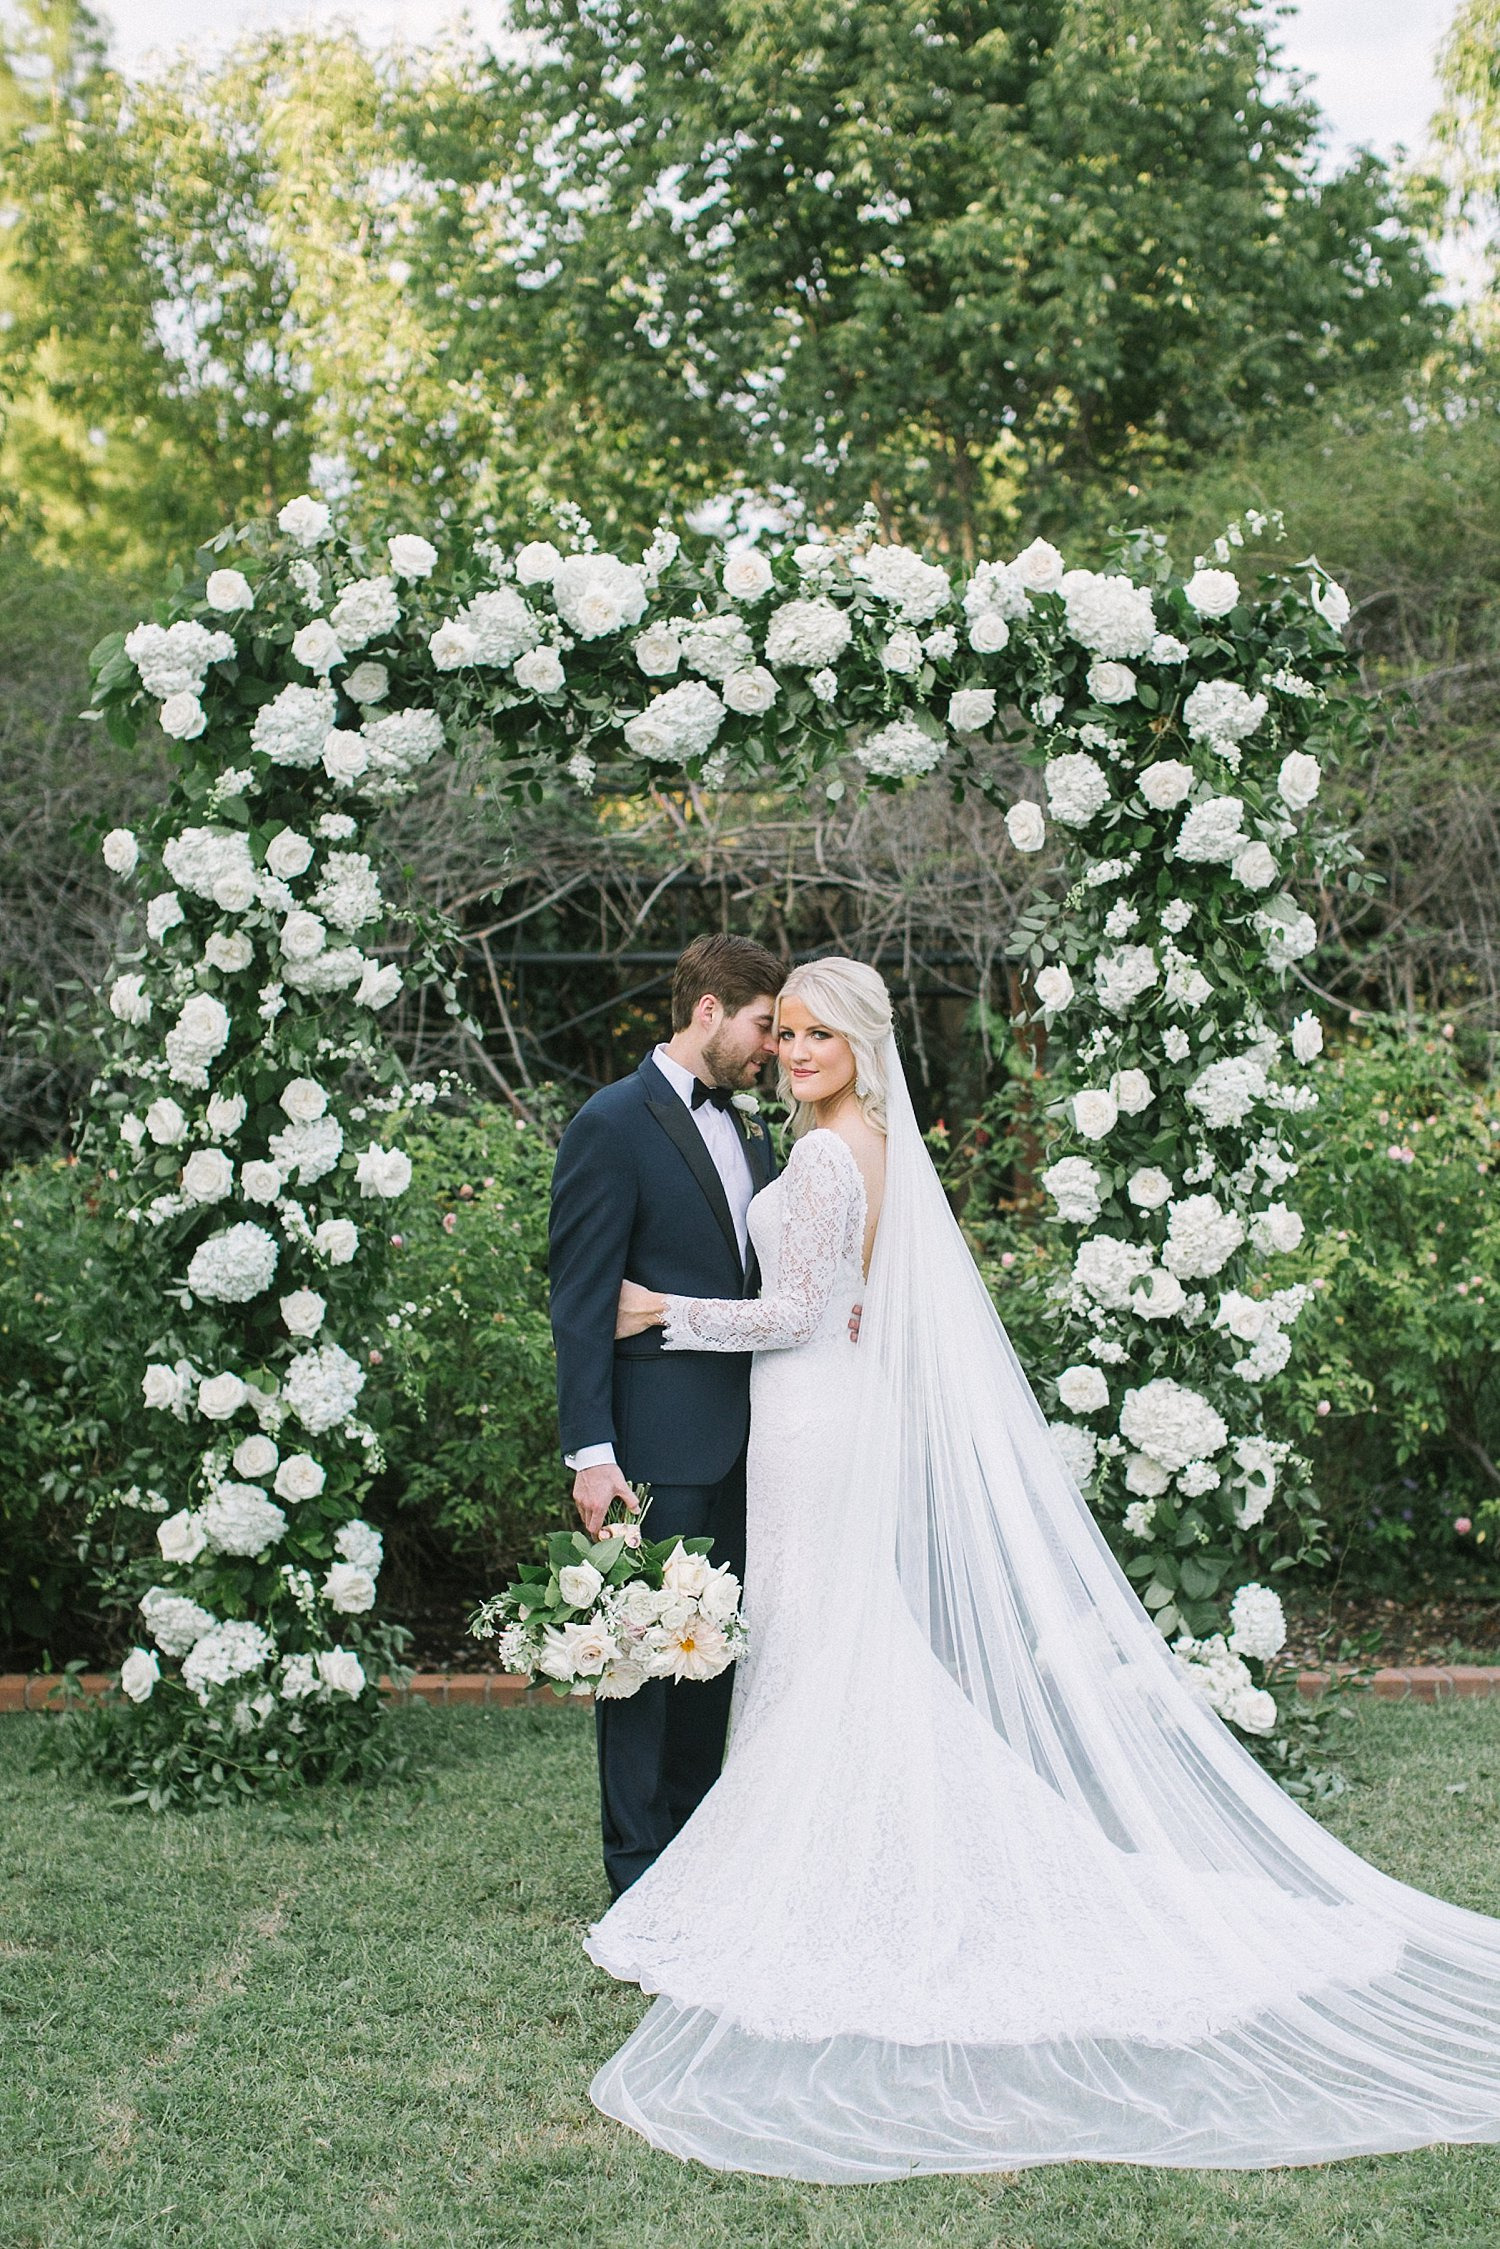 Bride and groom in front of white organic archway at clark gardens wedding